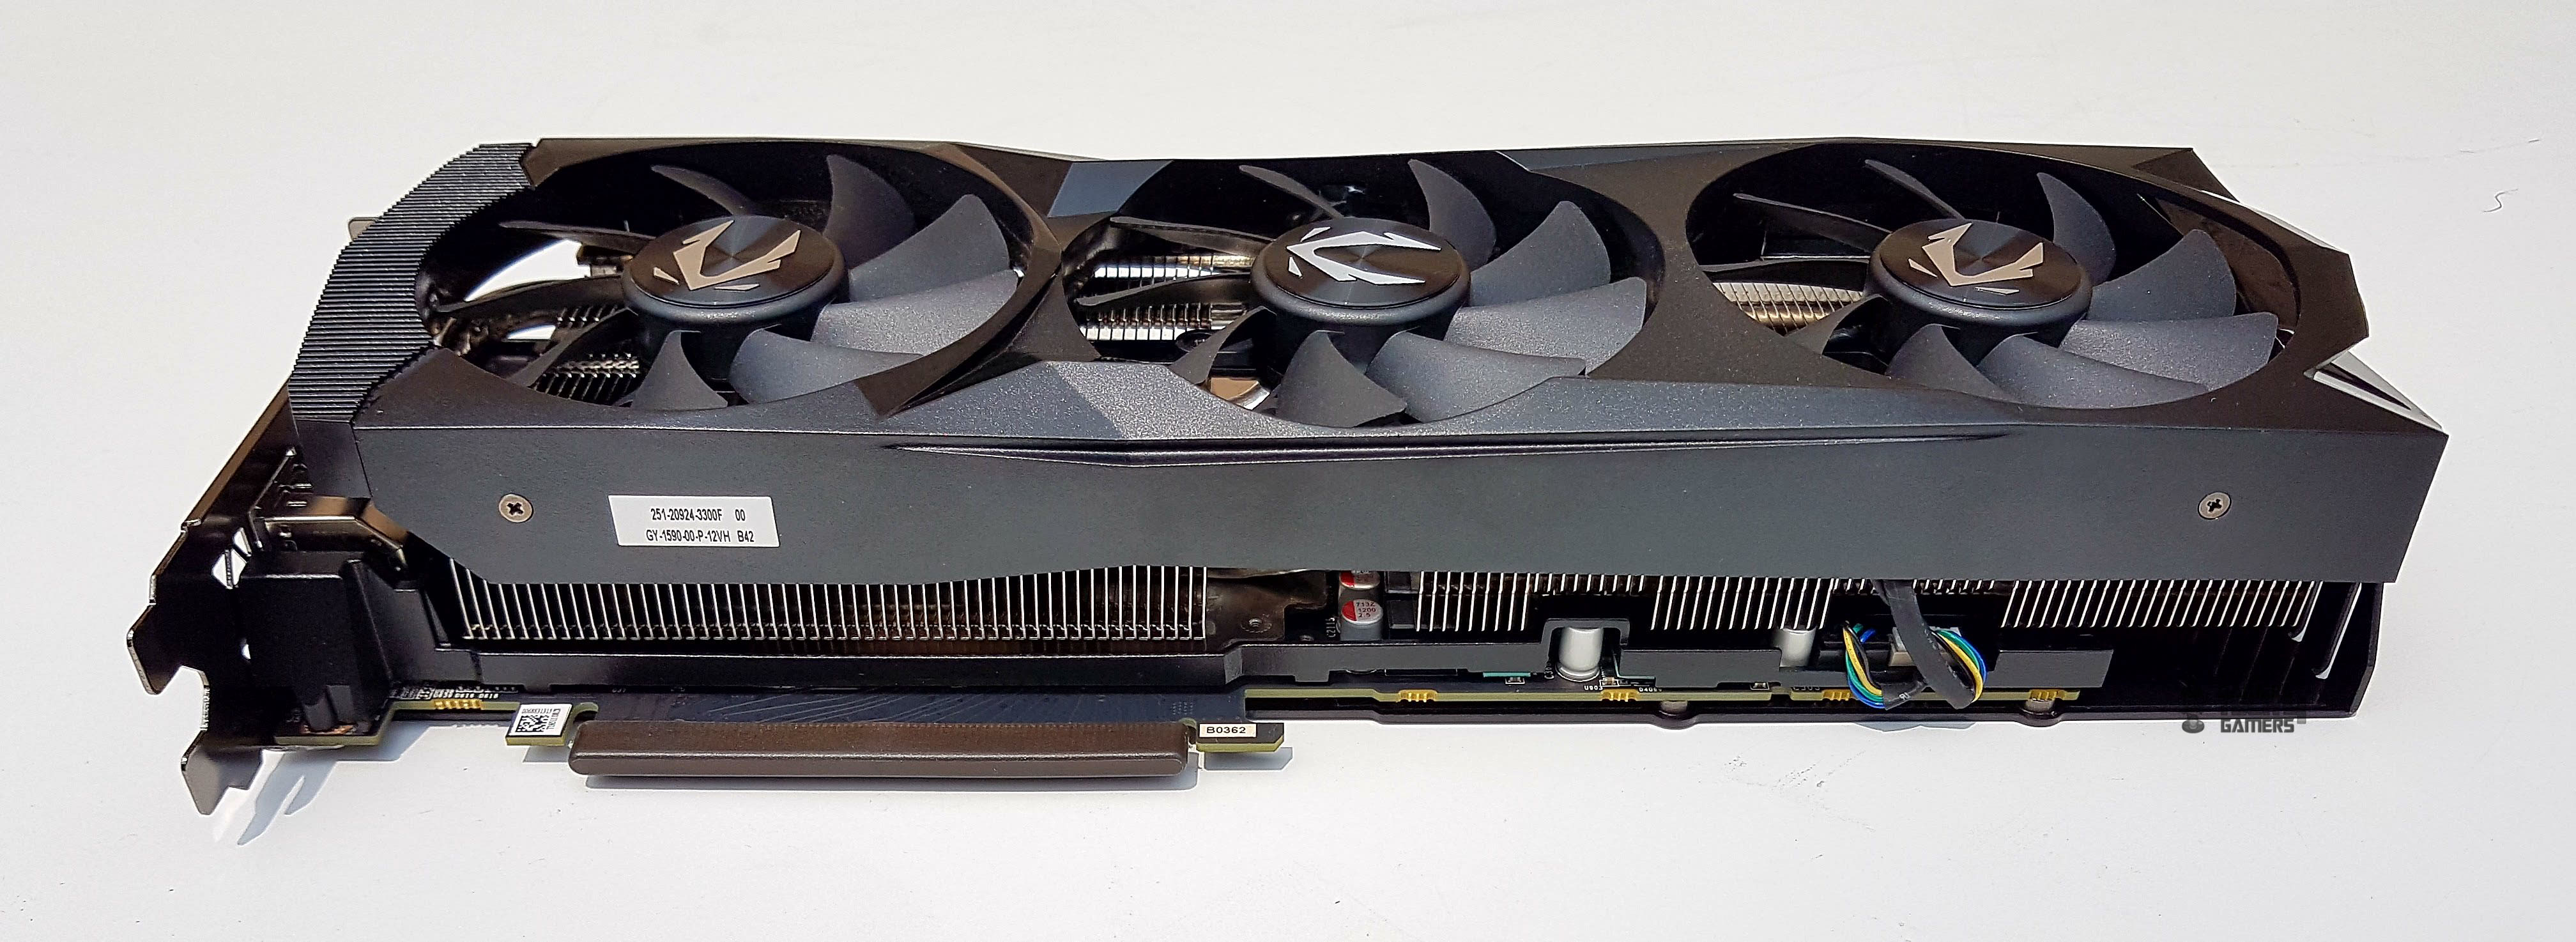 ZOTAC GeForce RTX 2070 Amp Extreme Edition Review